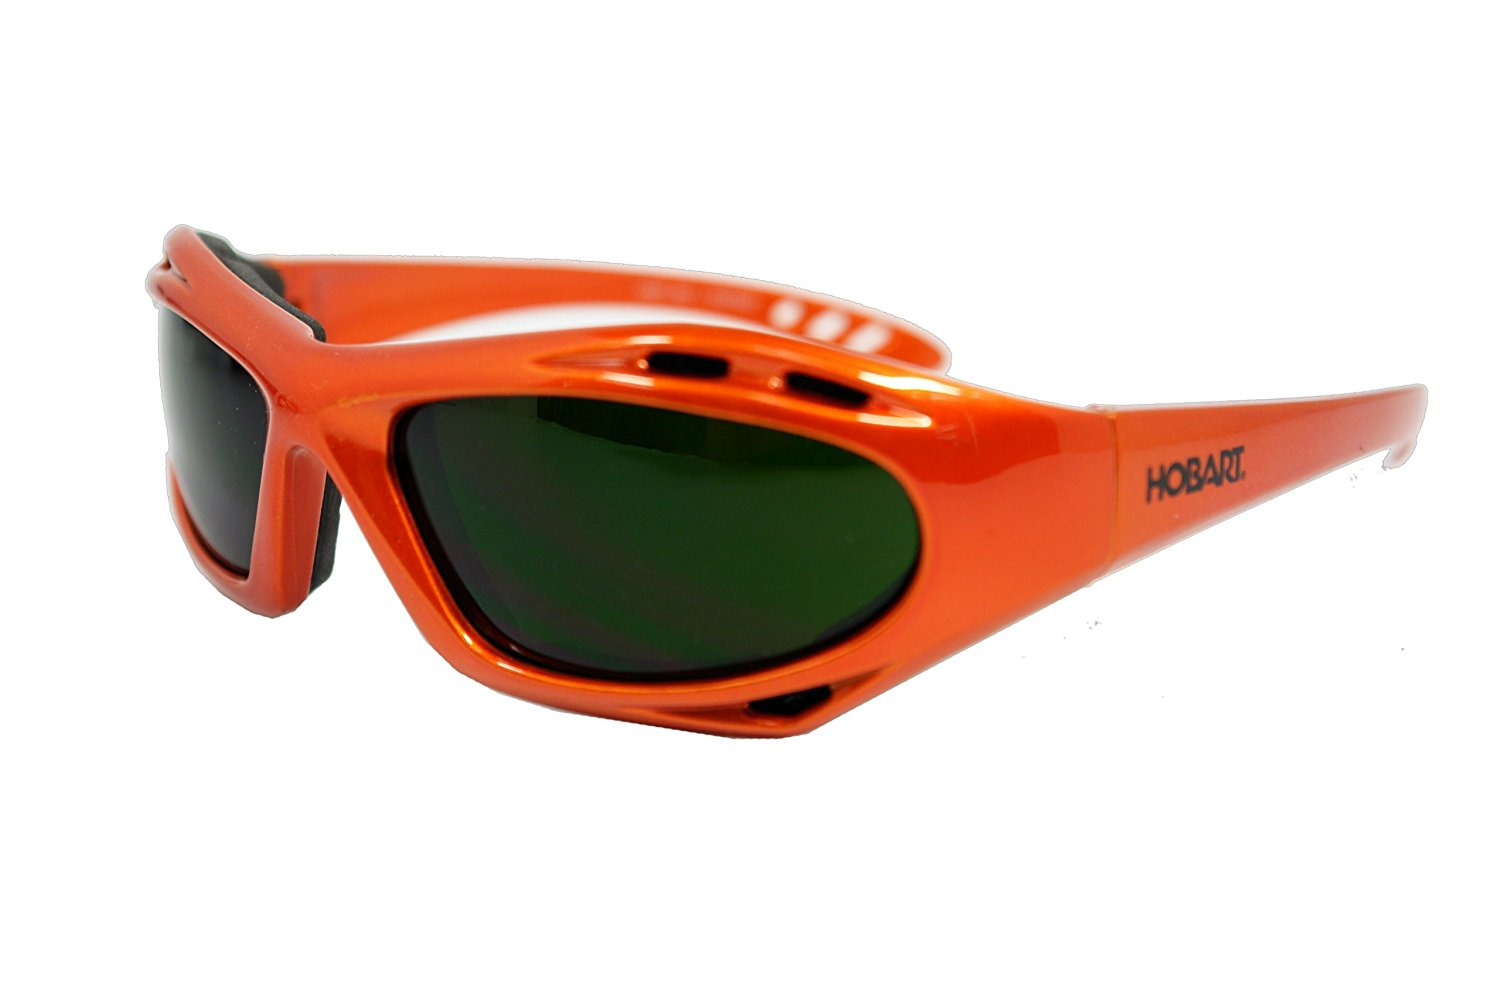 Hobart 770727 Shade 5 Lens Safety Glasses by Hobart Corp.